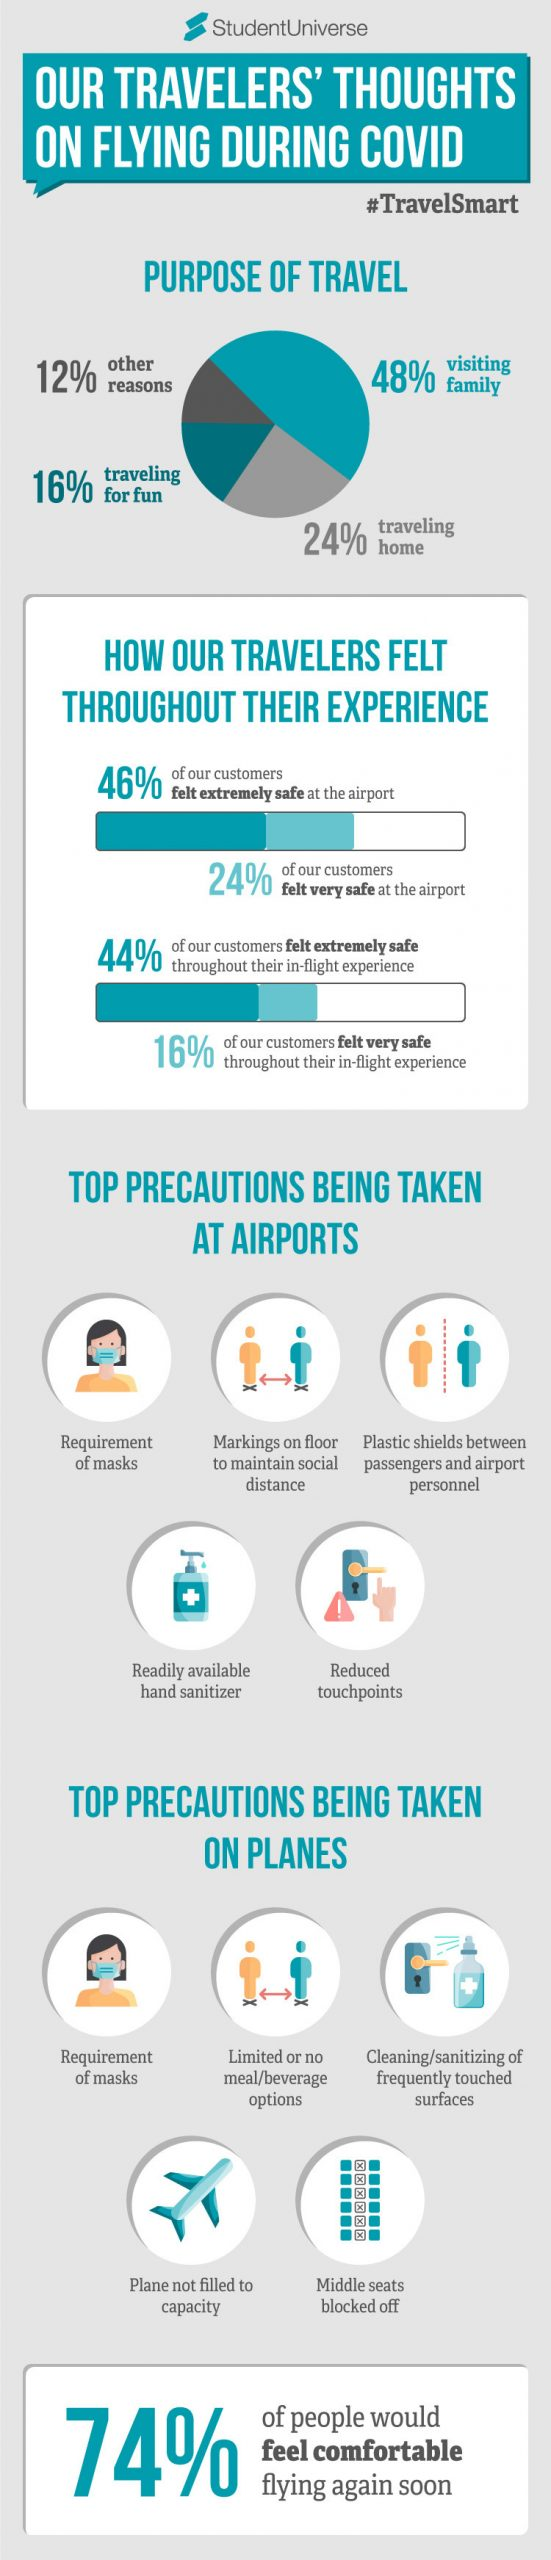 travel-smart-infographic